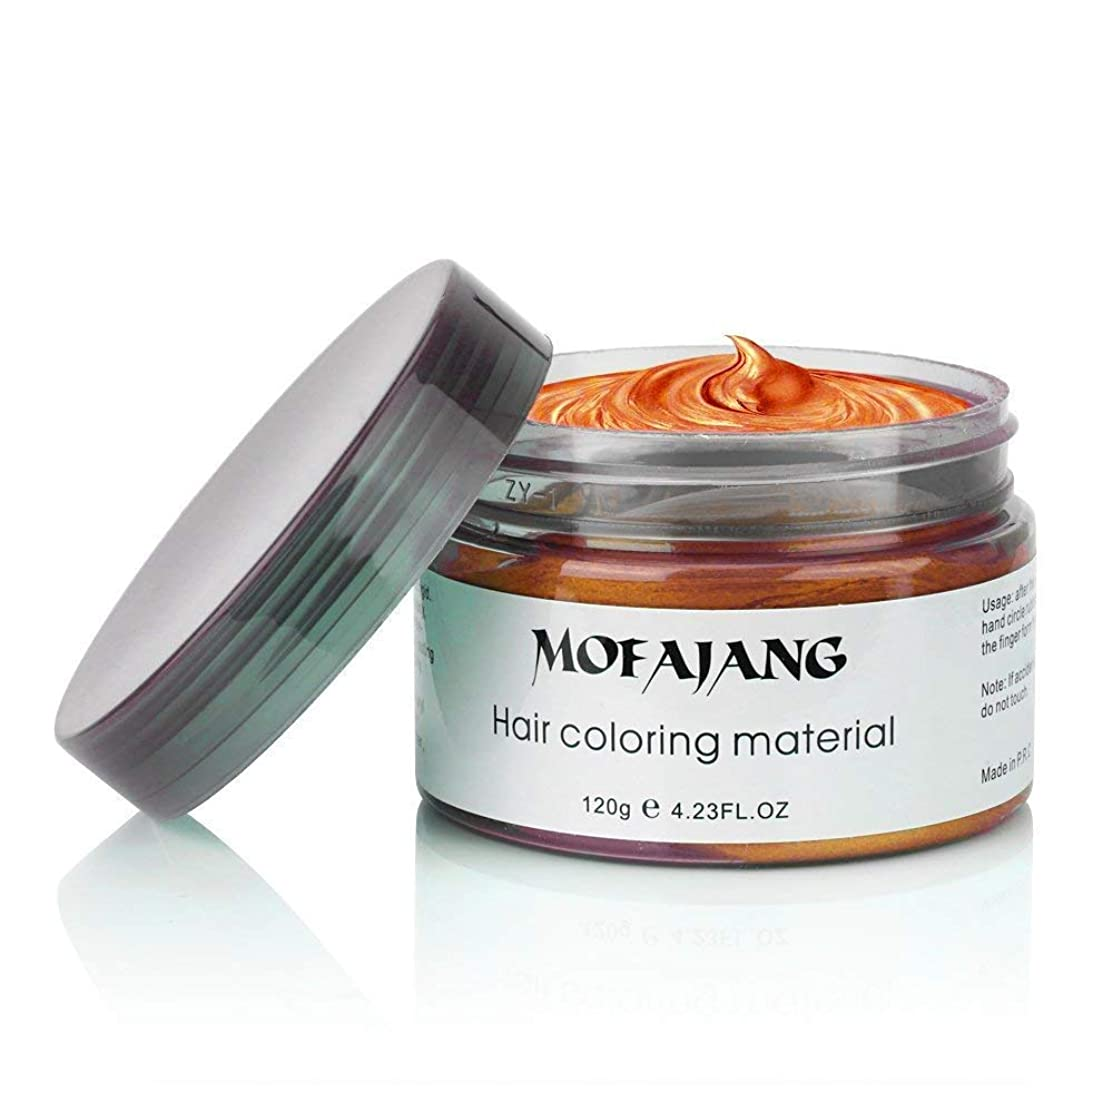 MOFAJANG Unisex Hair Wax Dye Styling Cream Mud, Upgrated Natural Hairstyle Color Pomade, Washable Temporary,Party Cosplay Daily Use (Orange)